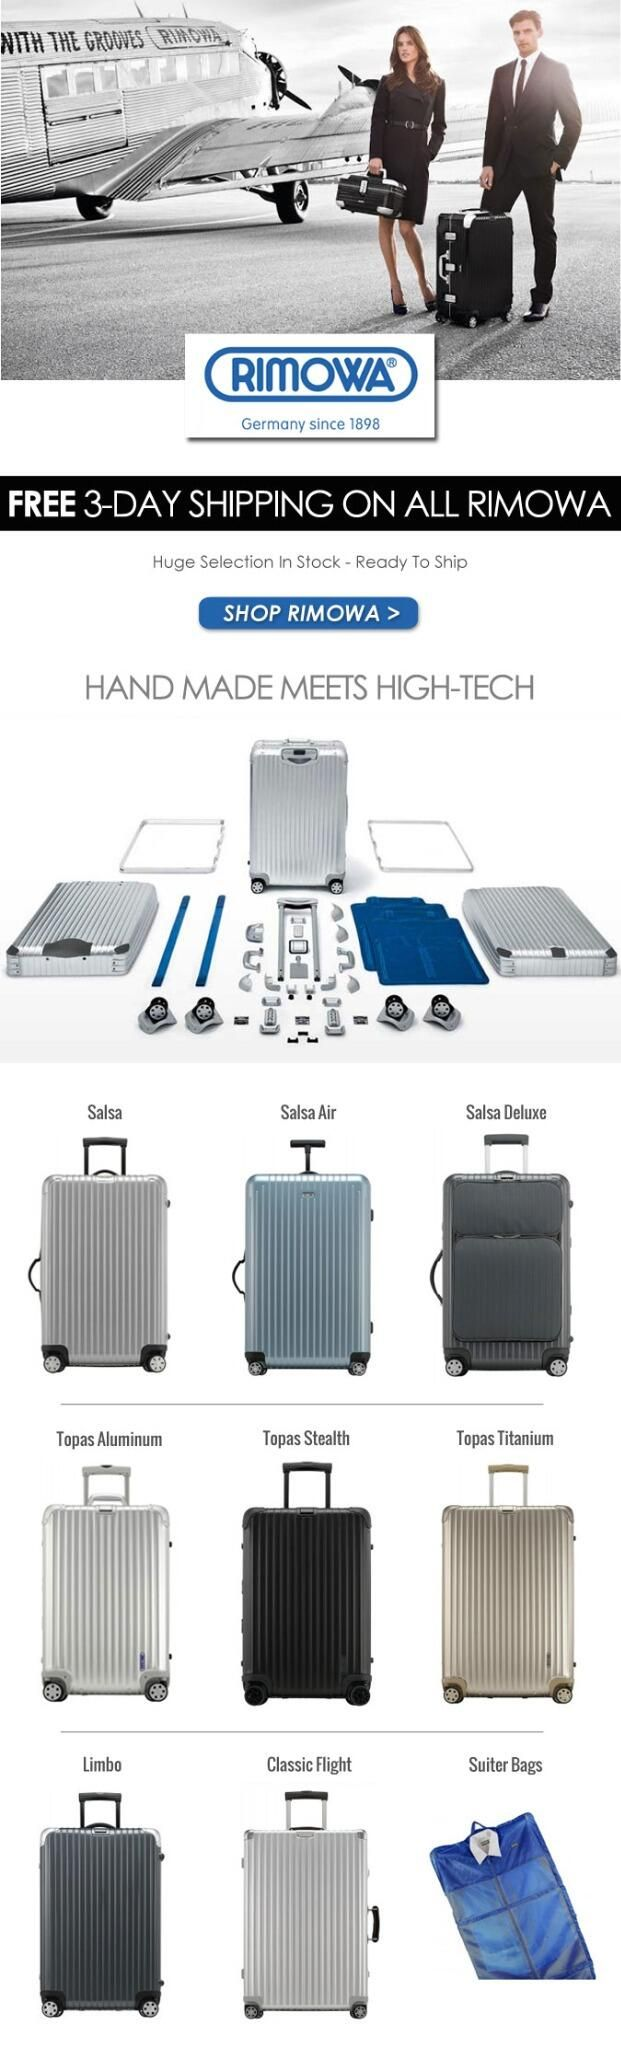 FREE 3-DAY SHIPPING ON ALL RIMOWA! #Freeshipping #Topoftheline #Luggage @RIMOWA_NA pic.twitter.com/CZOKgxduxq